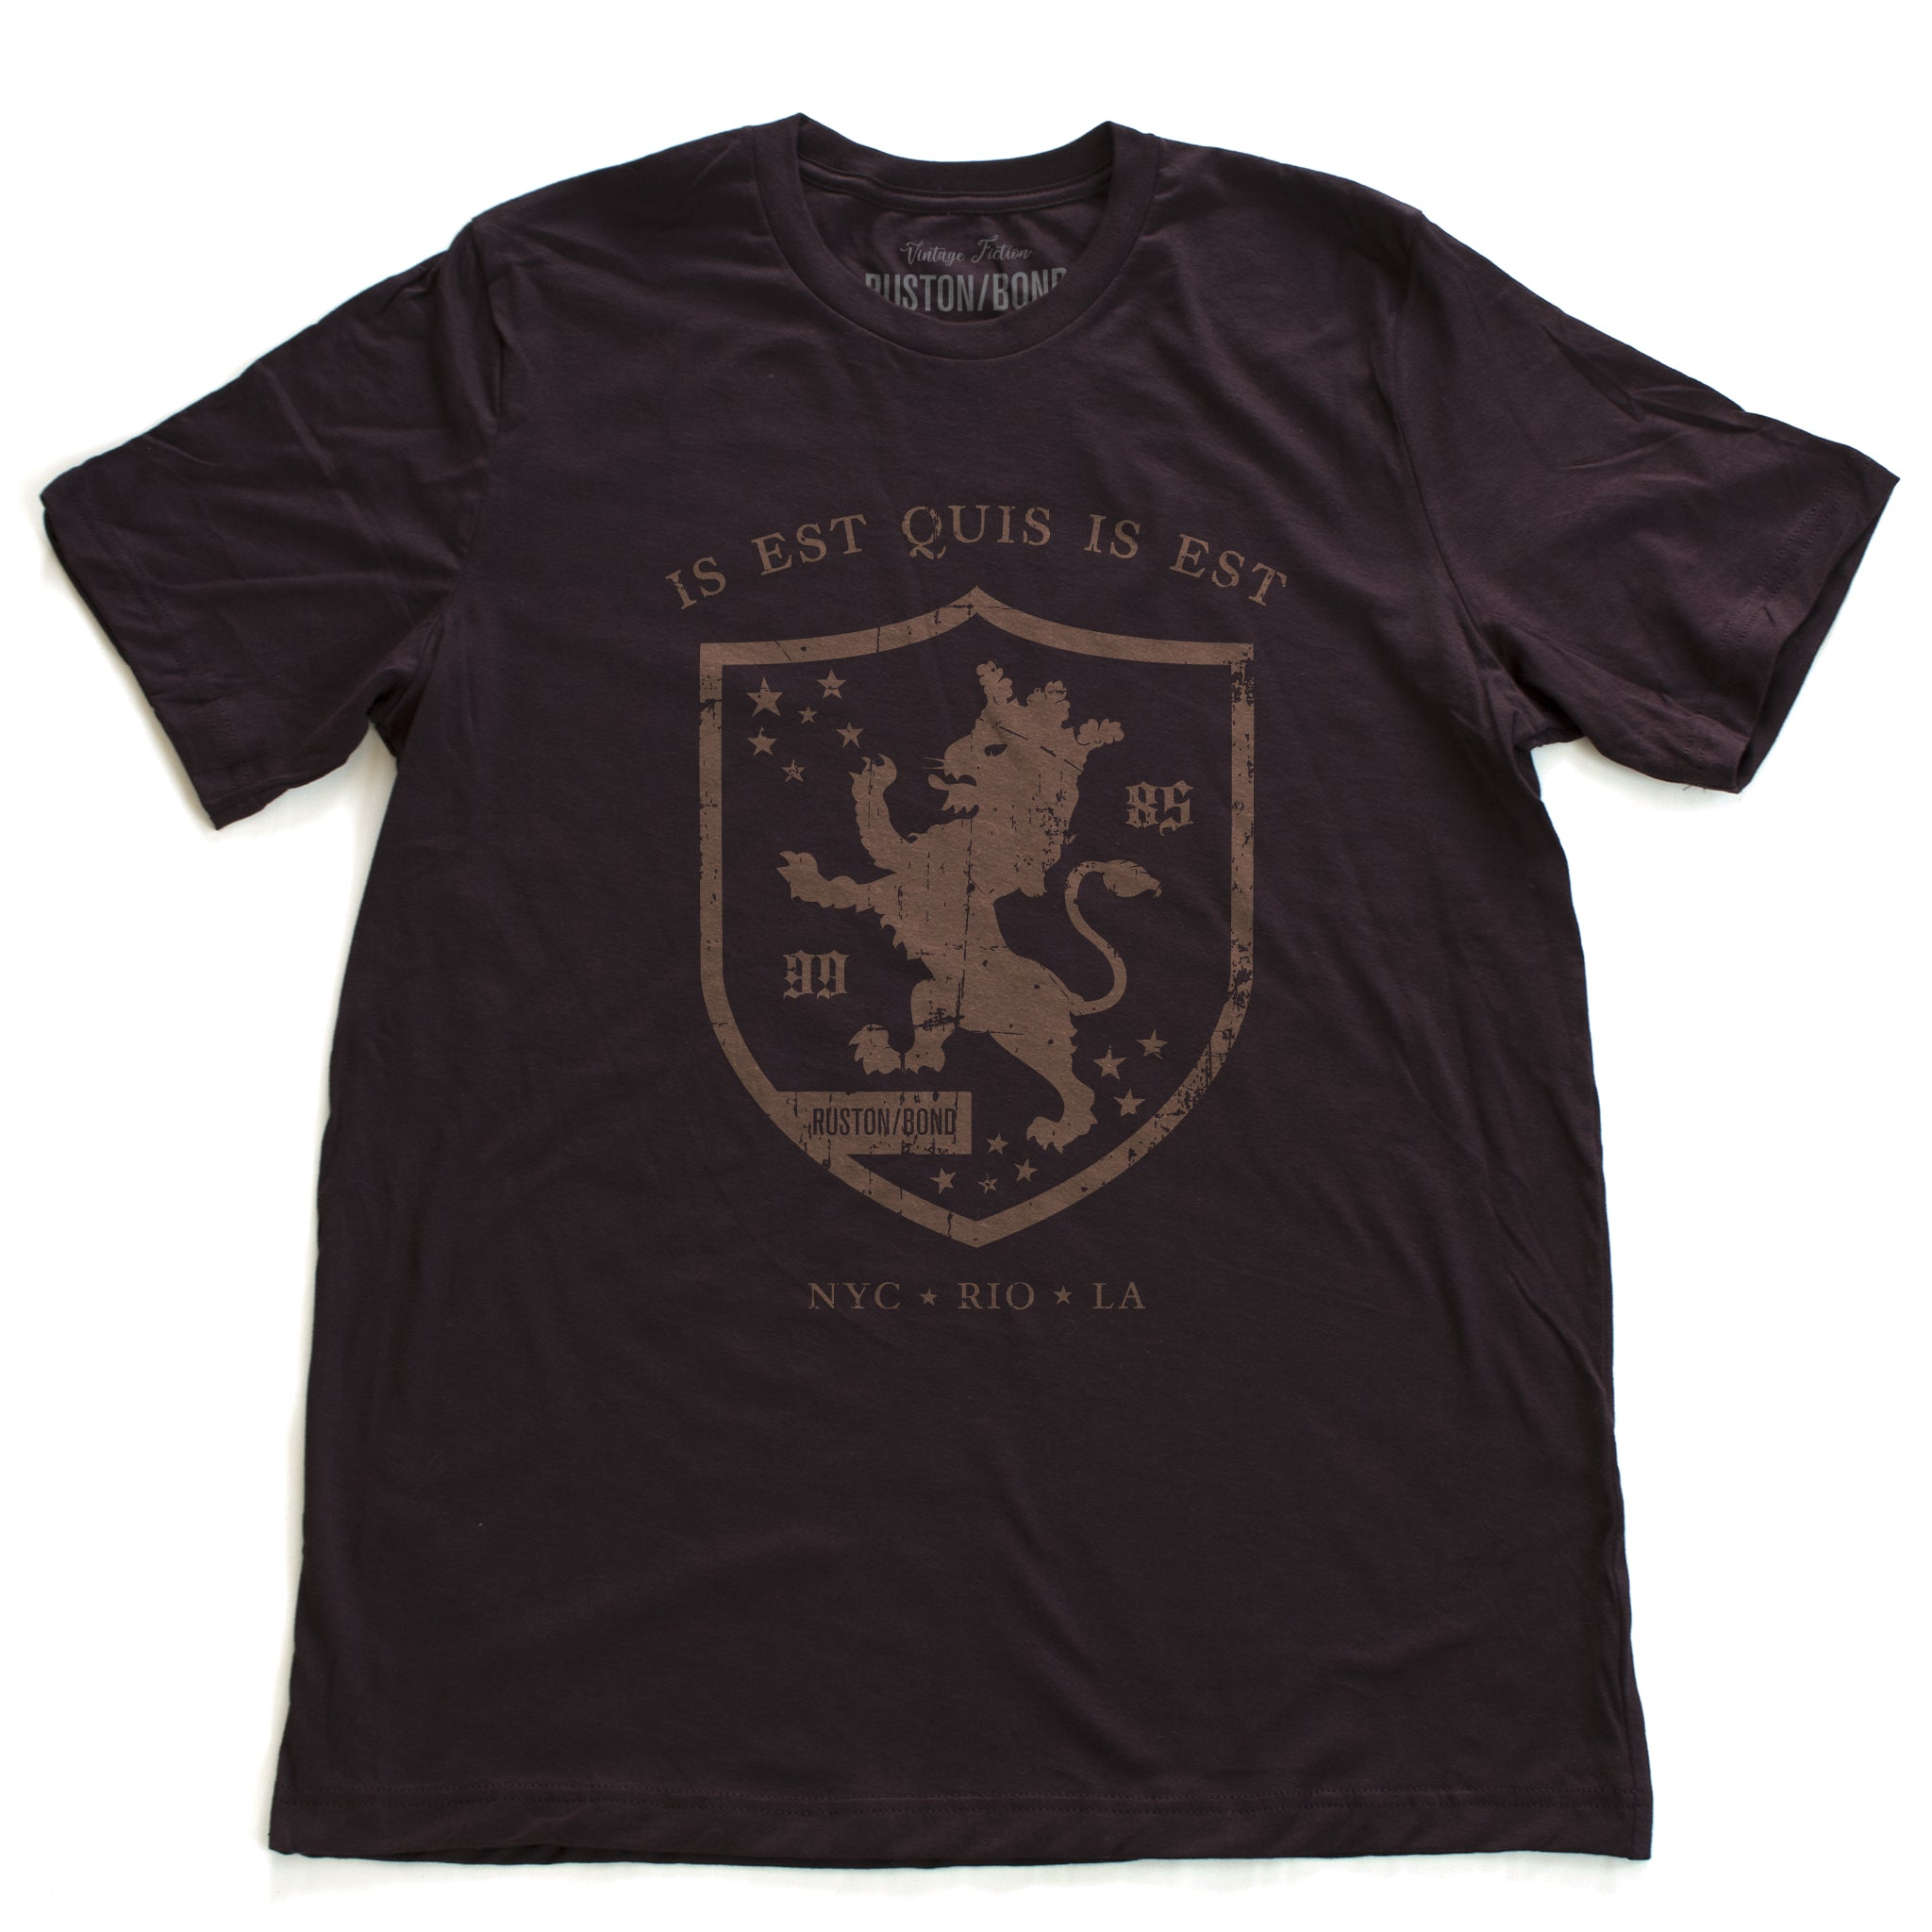 "A retro, vintage-inspired fashion t-shirt in Oxblood, with an medieval graphic of a lion within a shield,surrounded by the sarcastic text in Latin ""it is what it is,"" and New York, Rio, Los Angeles at the bottom. By fashion brand Ruston/Bond, from wolfsaint.net"